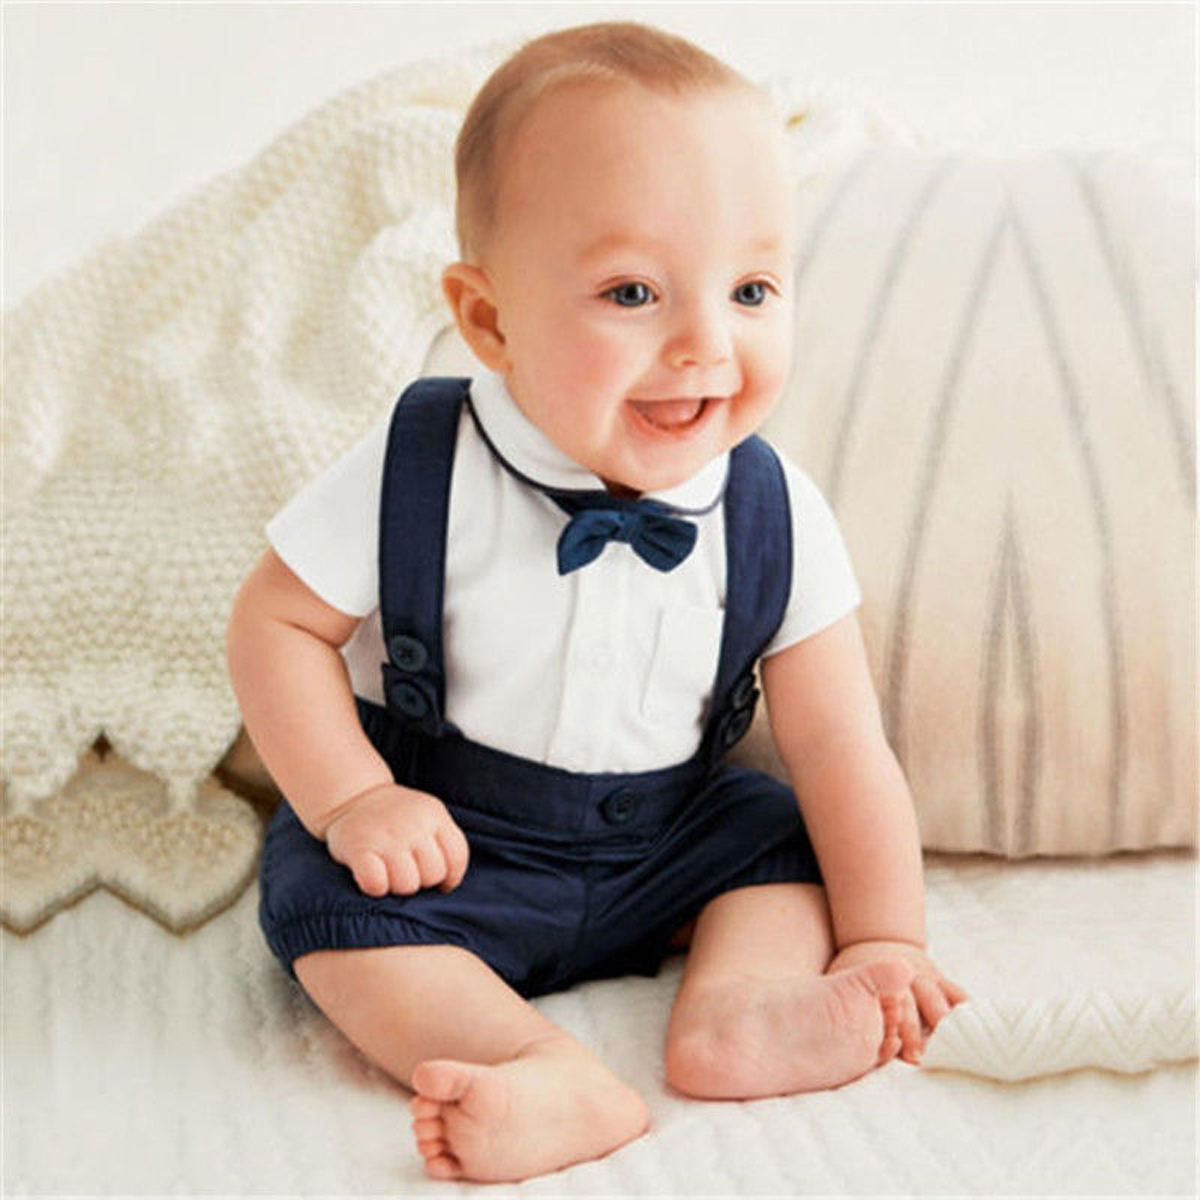 details about us toddler kids baby boy formal suit party wedding tuxedo  gentleman 2pcs outfit